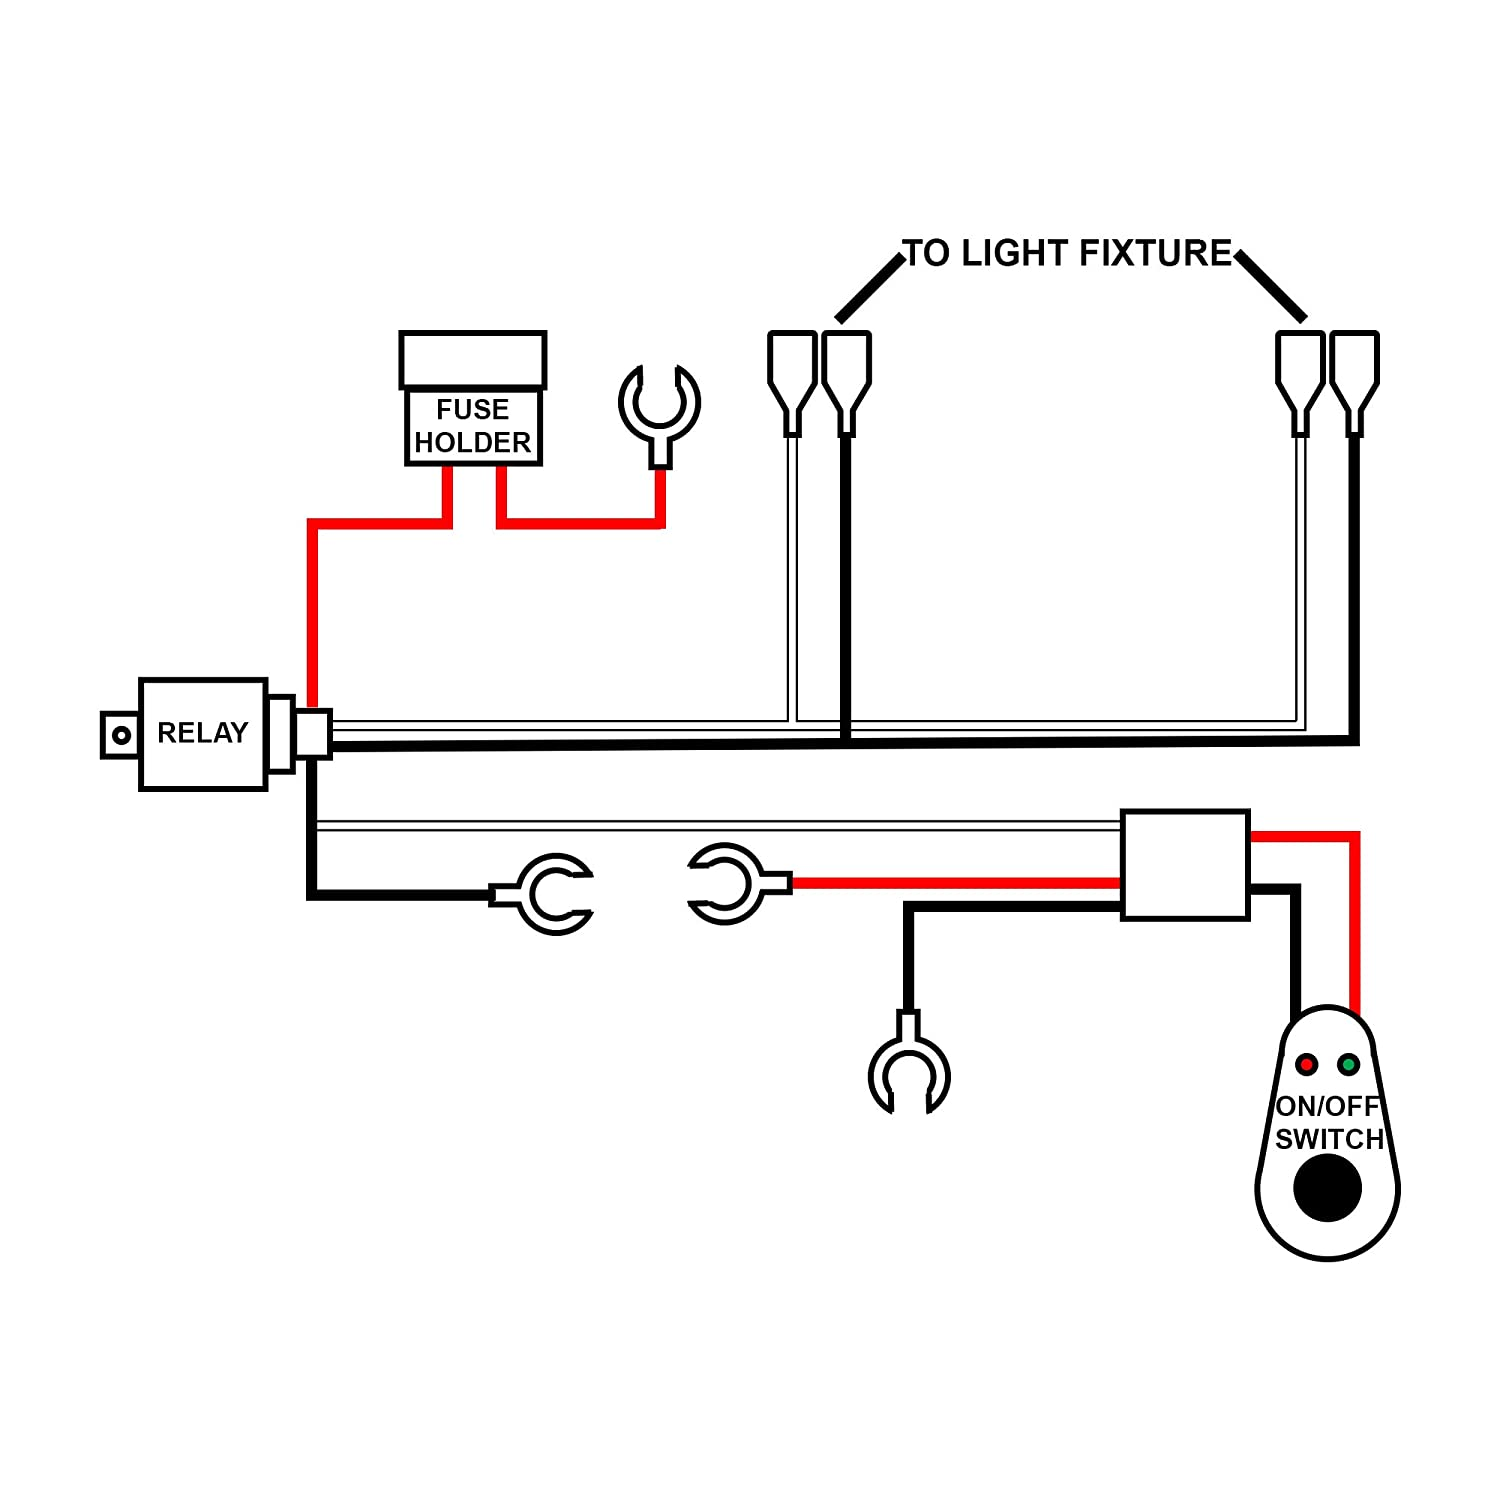 71fqGUyUJ5L._SL1500_ kc light wiring diagram jk fog light wiring diagram \u2022 free wiring Custom LED Light Strips at crackthecode.co